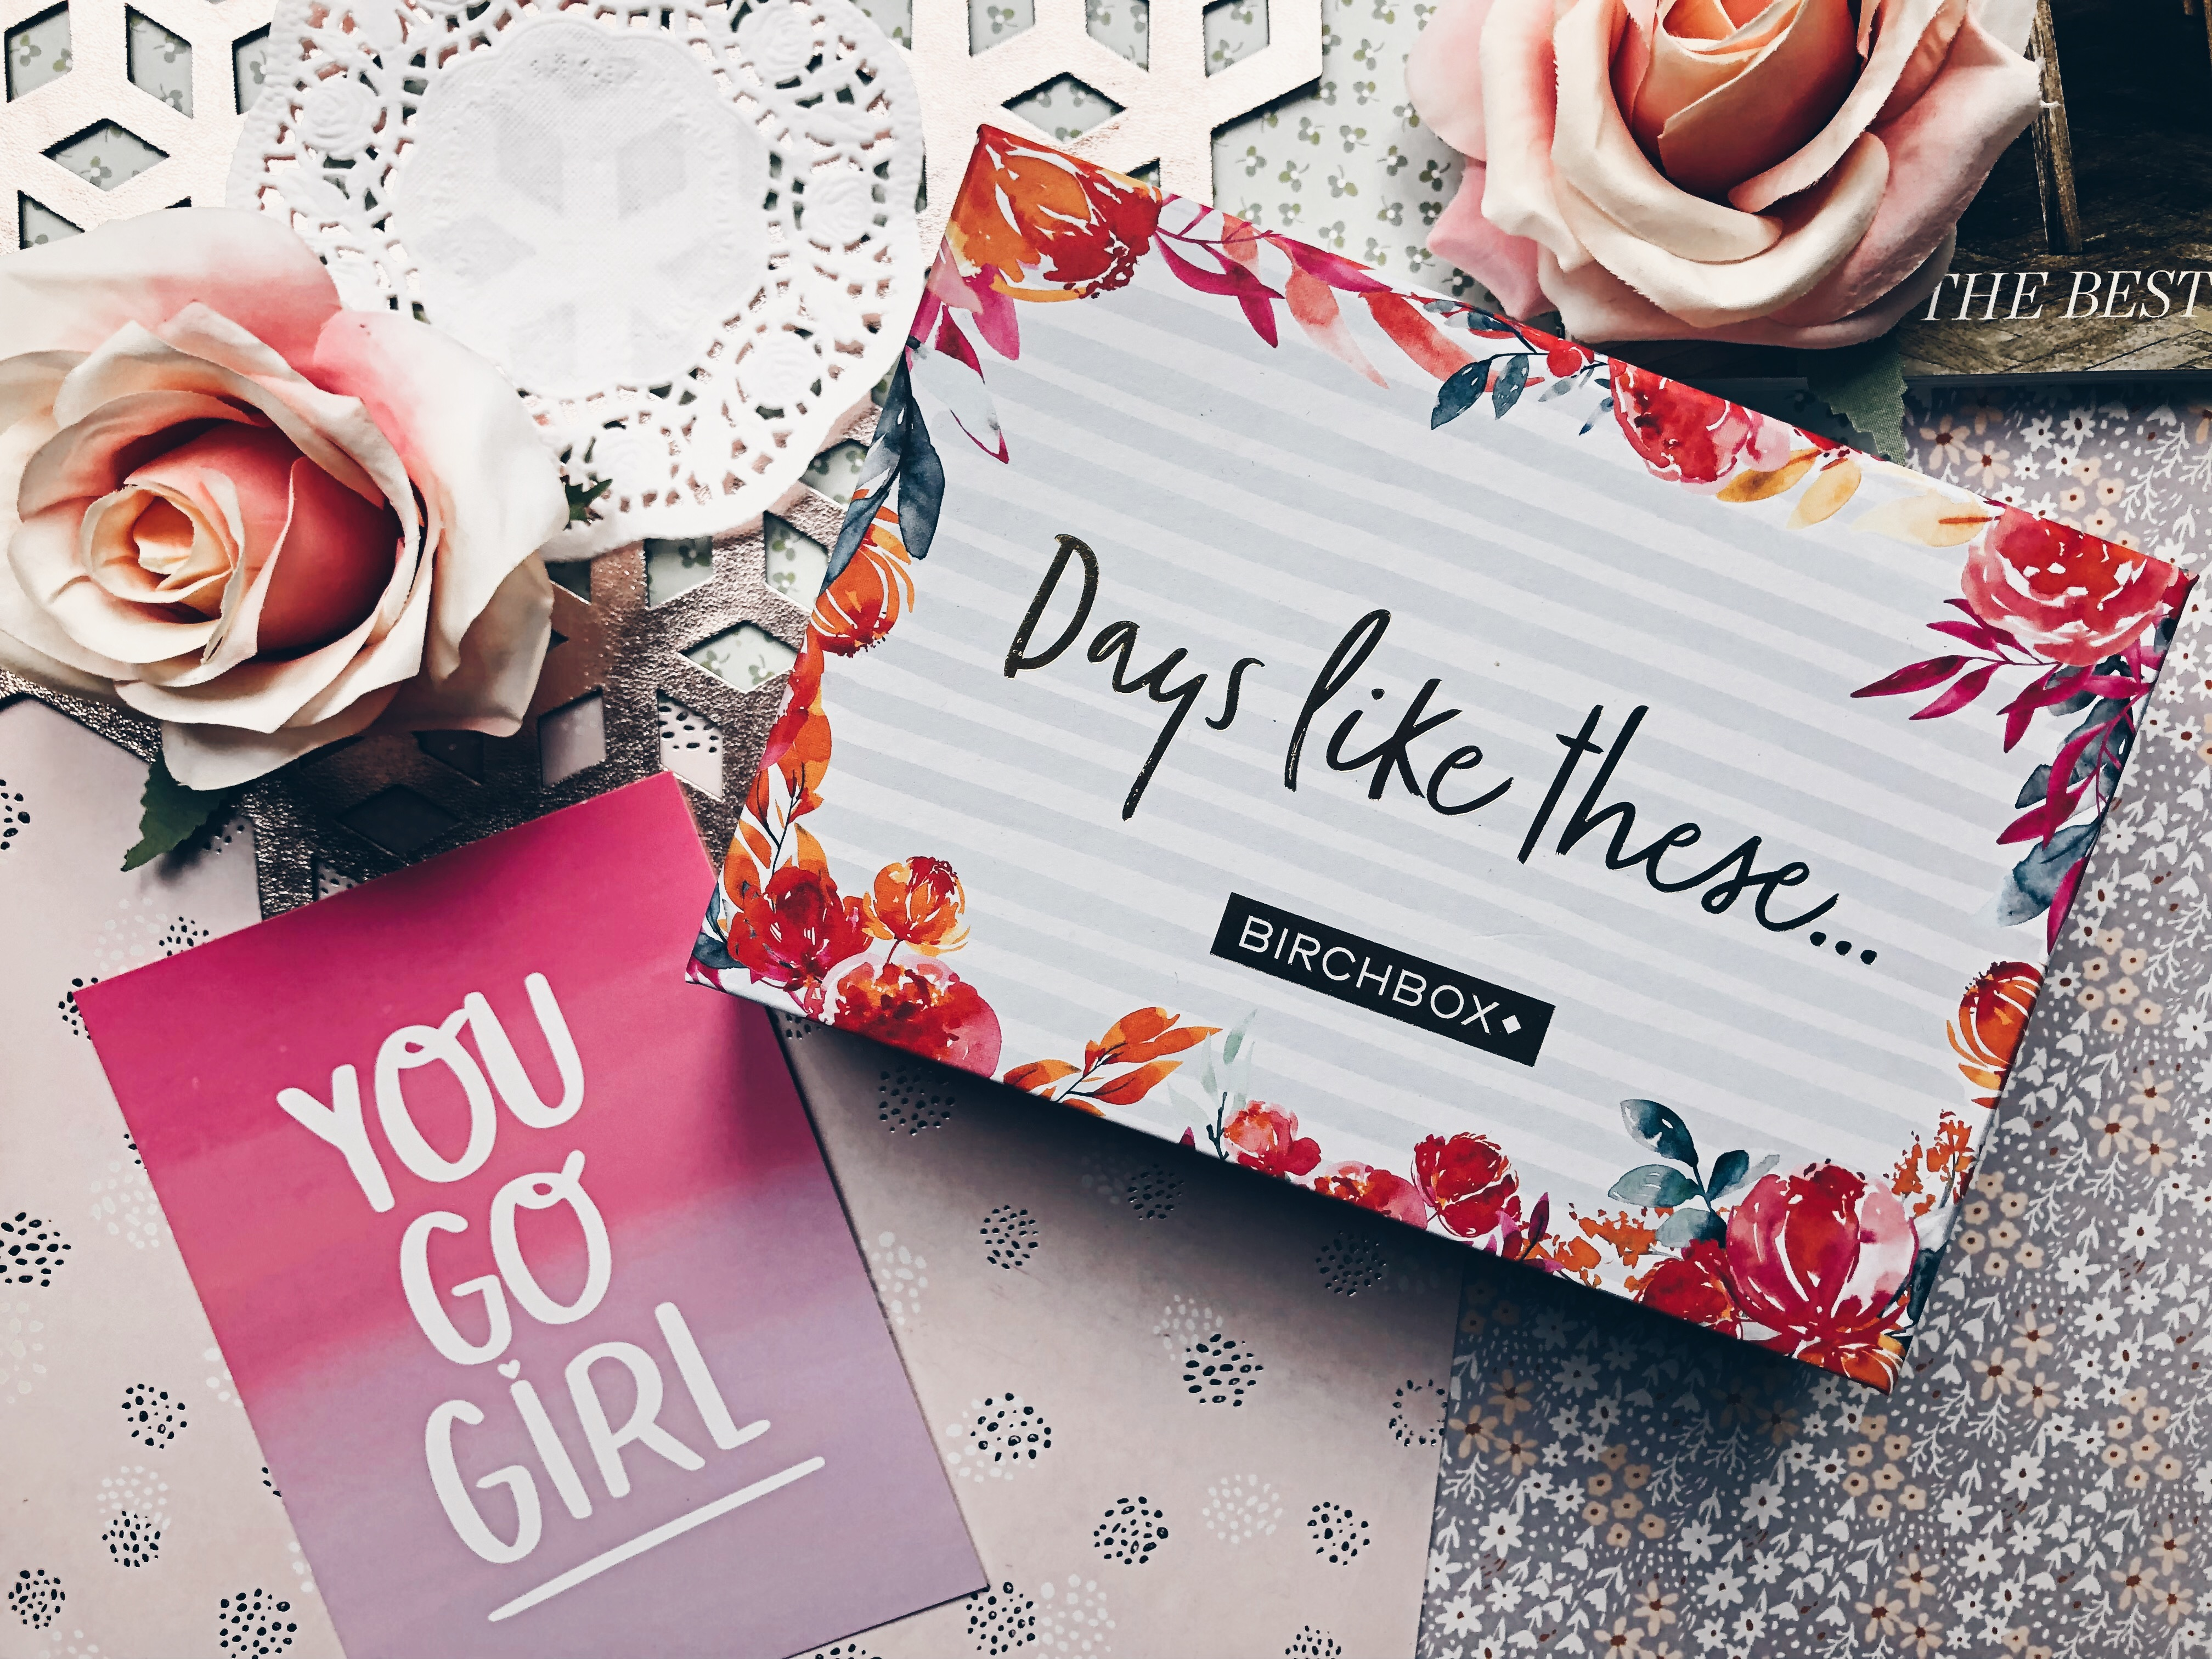 BIRCHBOX OCTOBER 2018: DAYS LIKE THESE – REVIEW